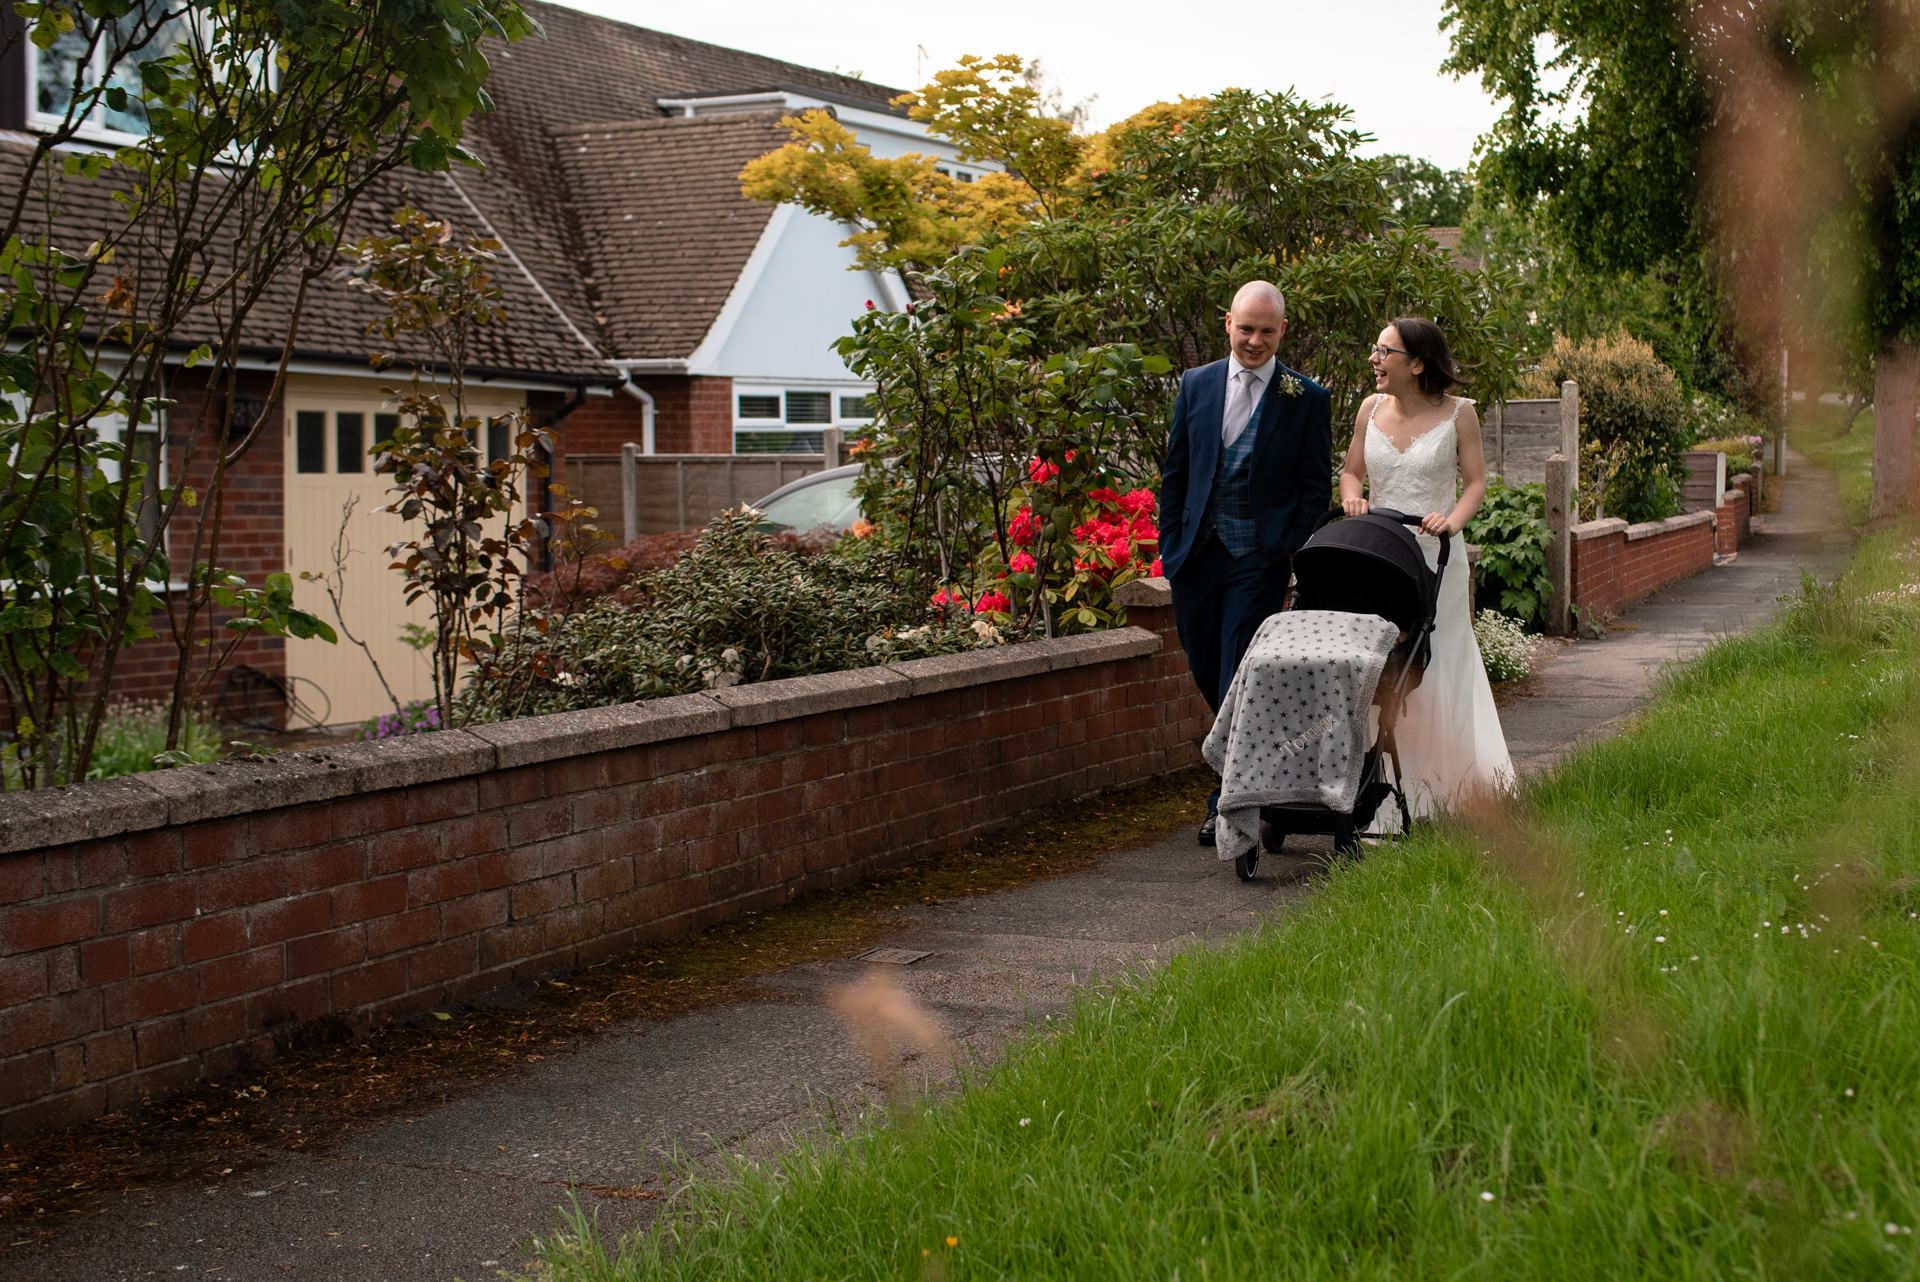 The Plough inn wedding photos